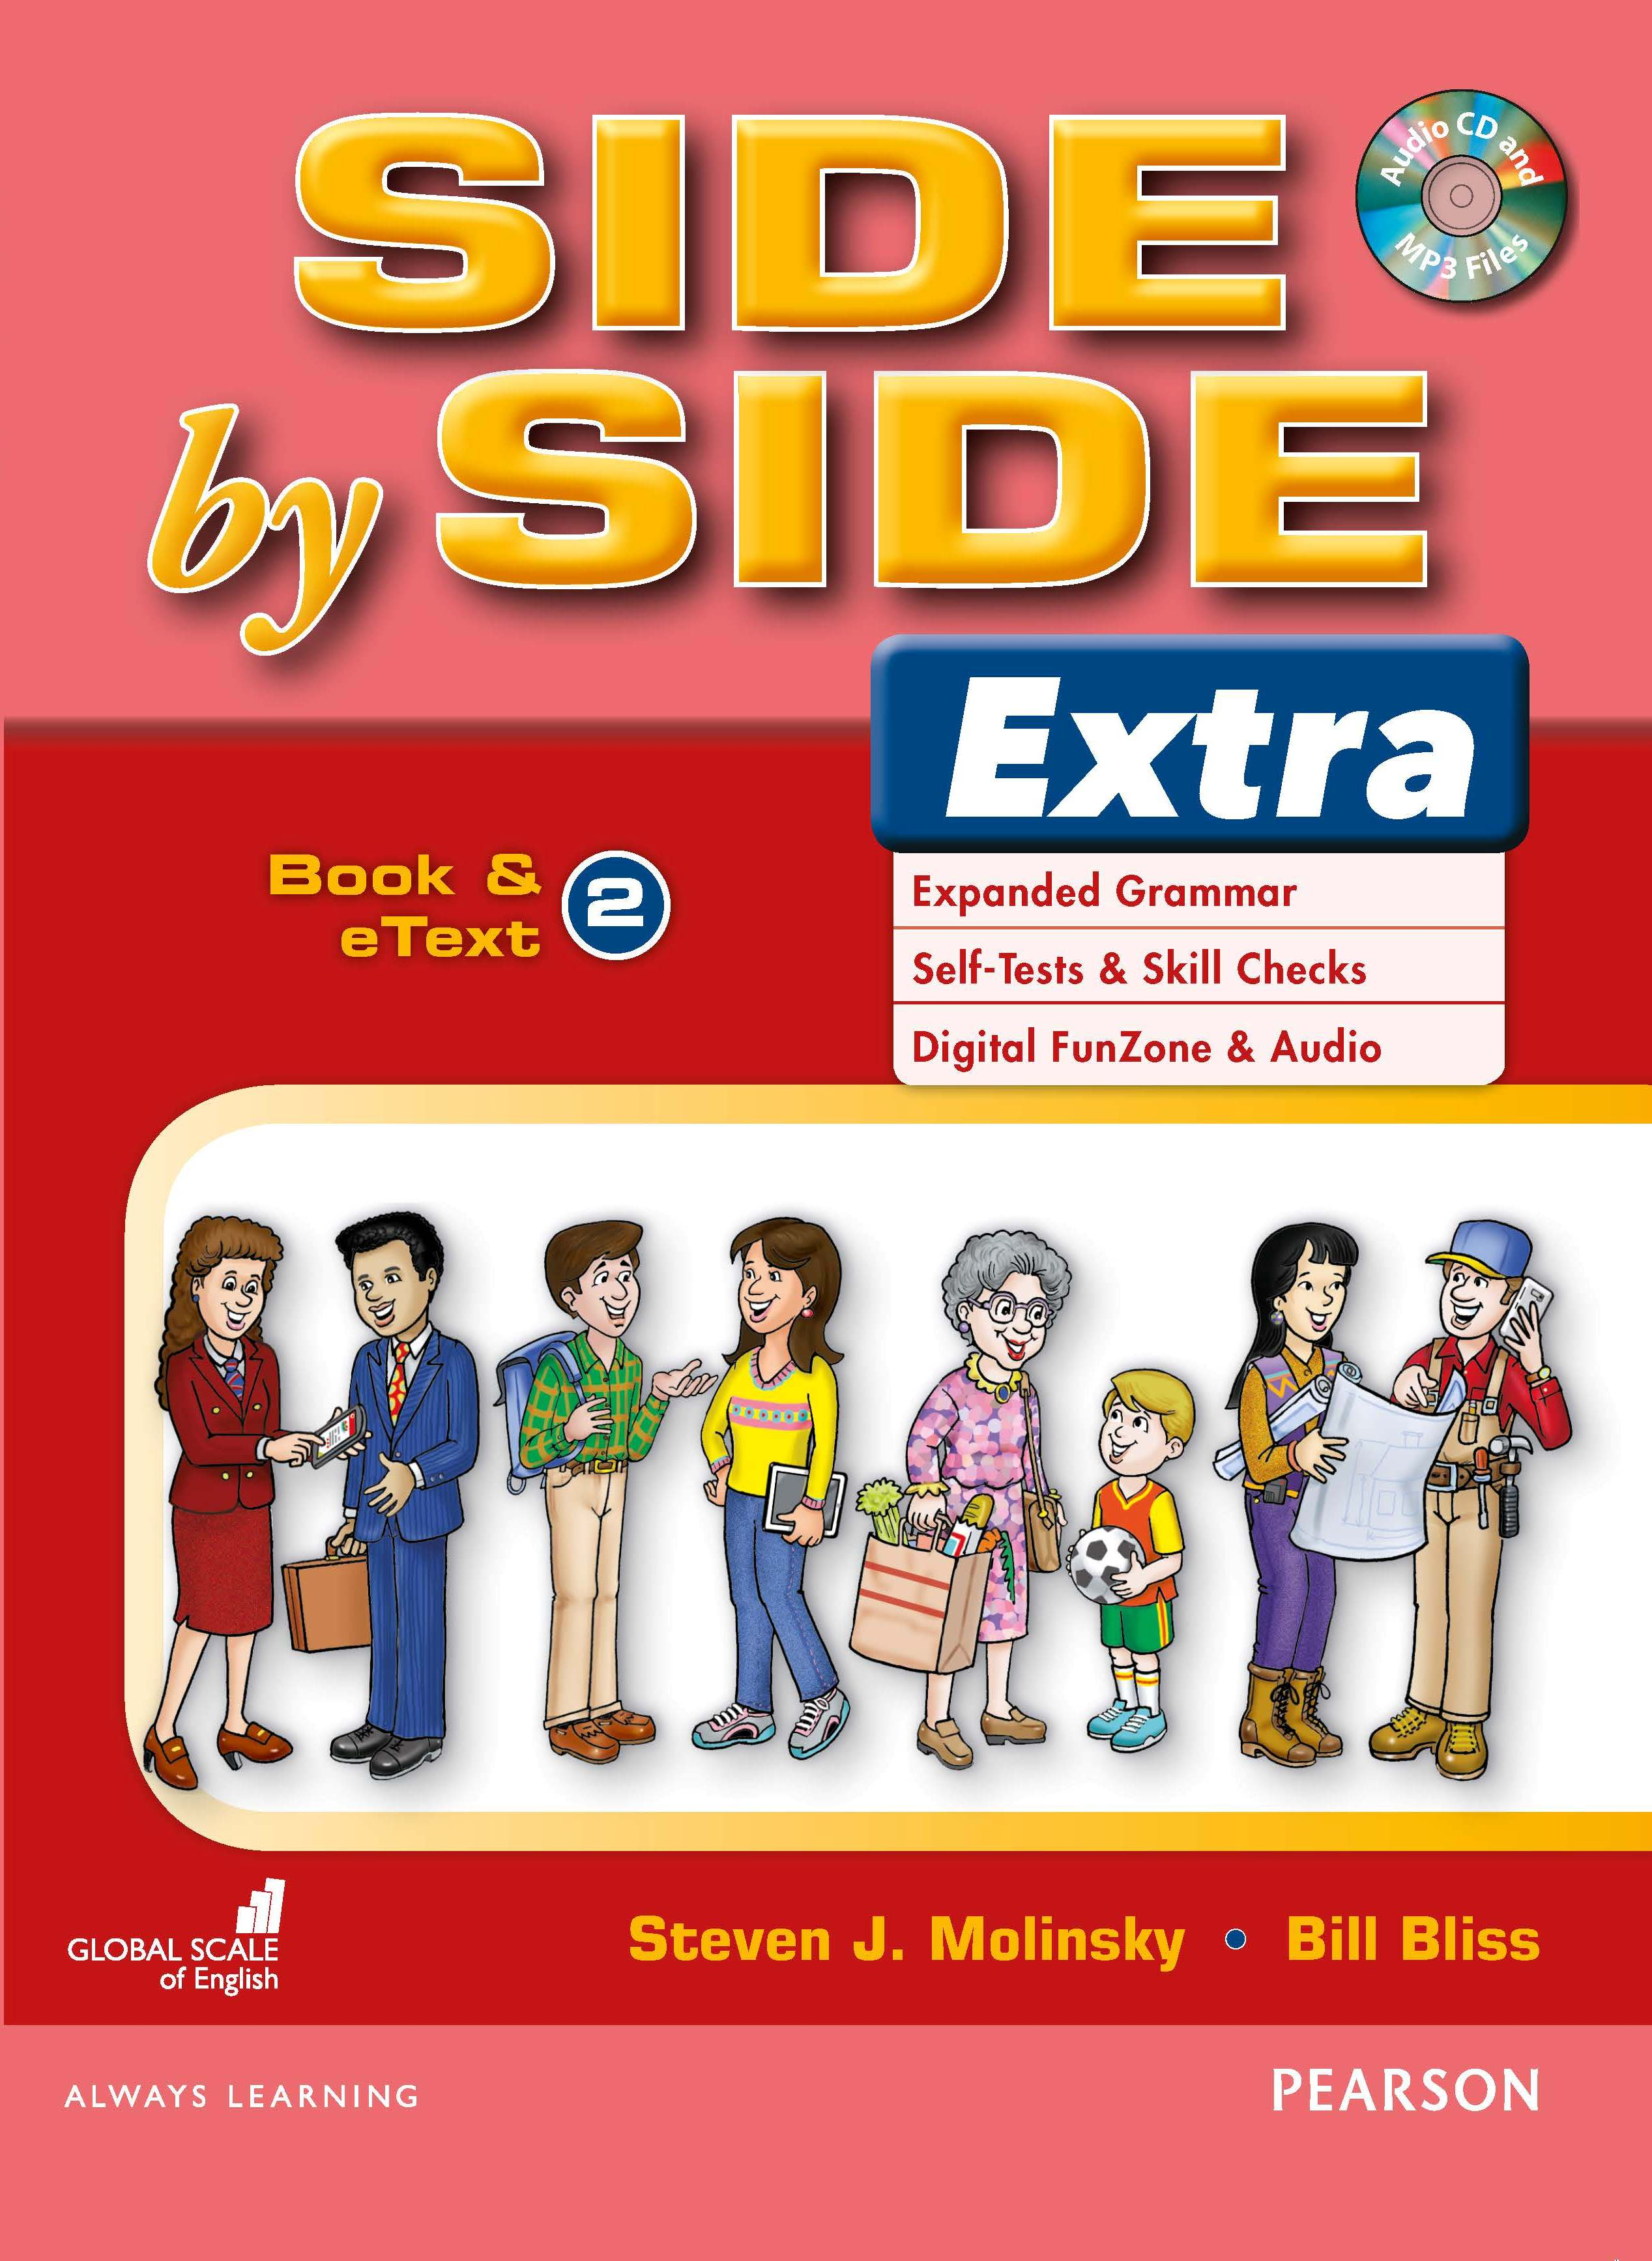 English Course Side by Side Extra Student Book cover Level 2